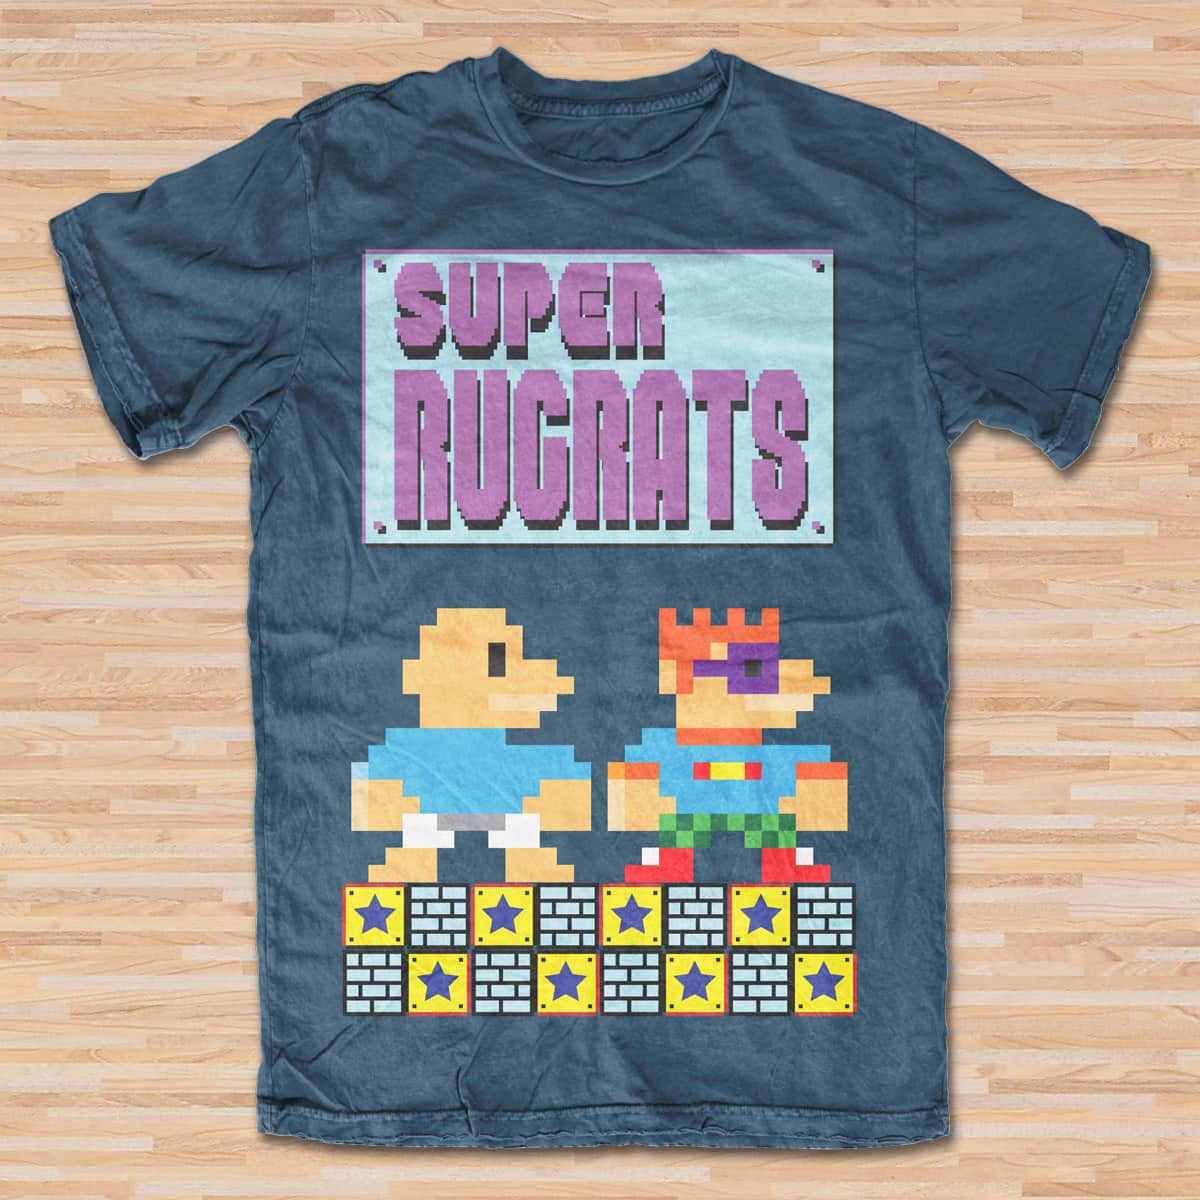 Super Rugrats by mikmik2k4 on Threadless